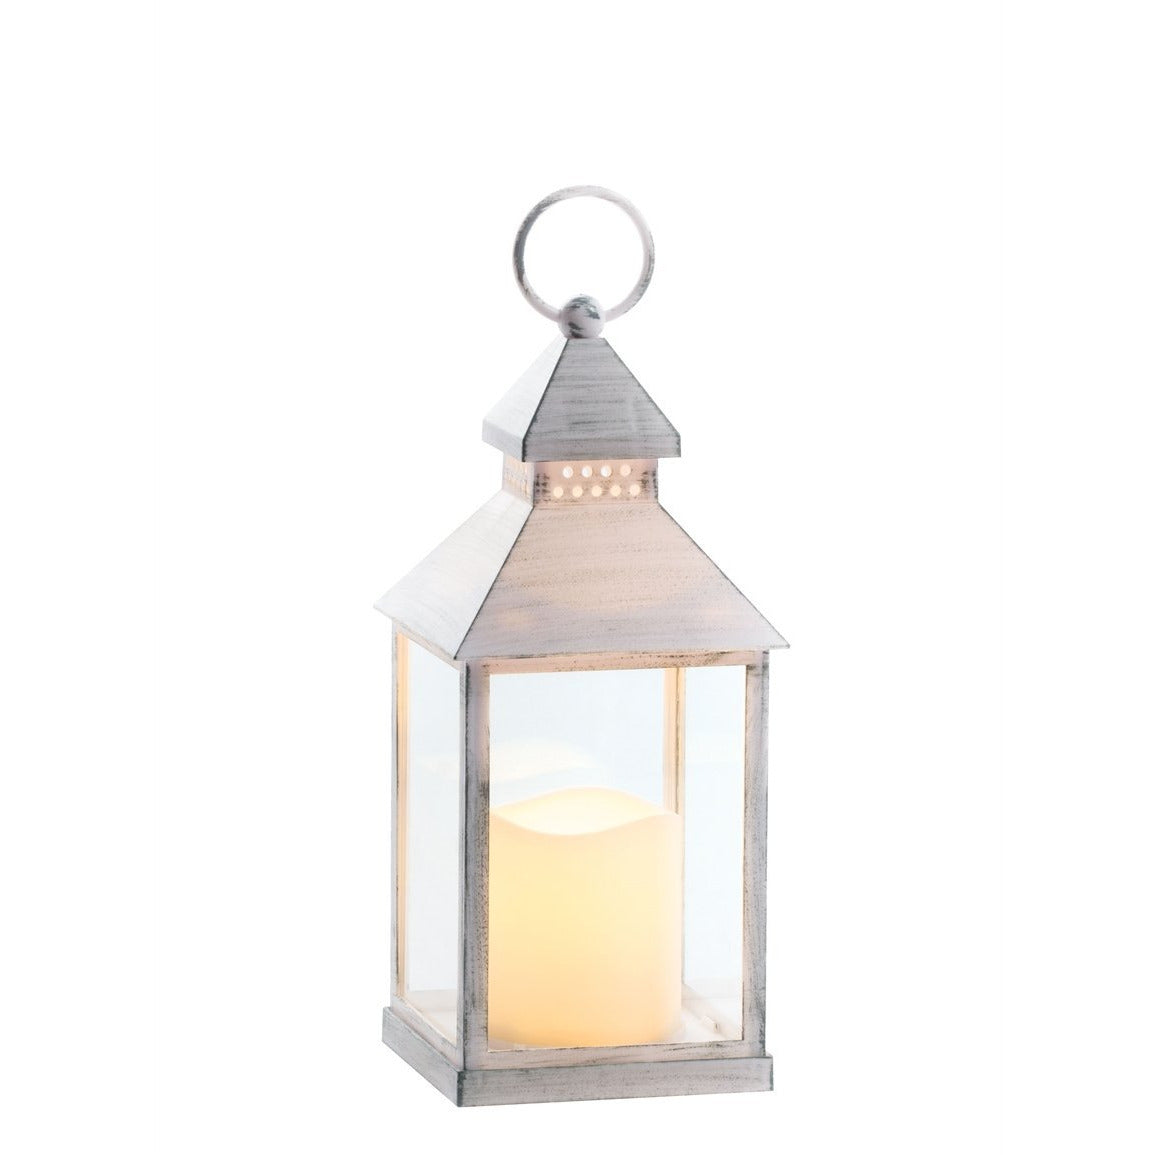 Lantern Candle w/Pillar - White